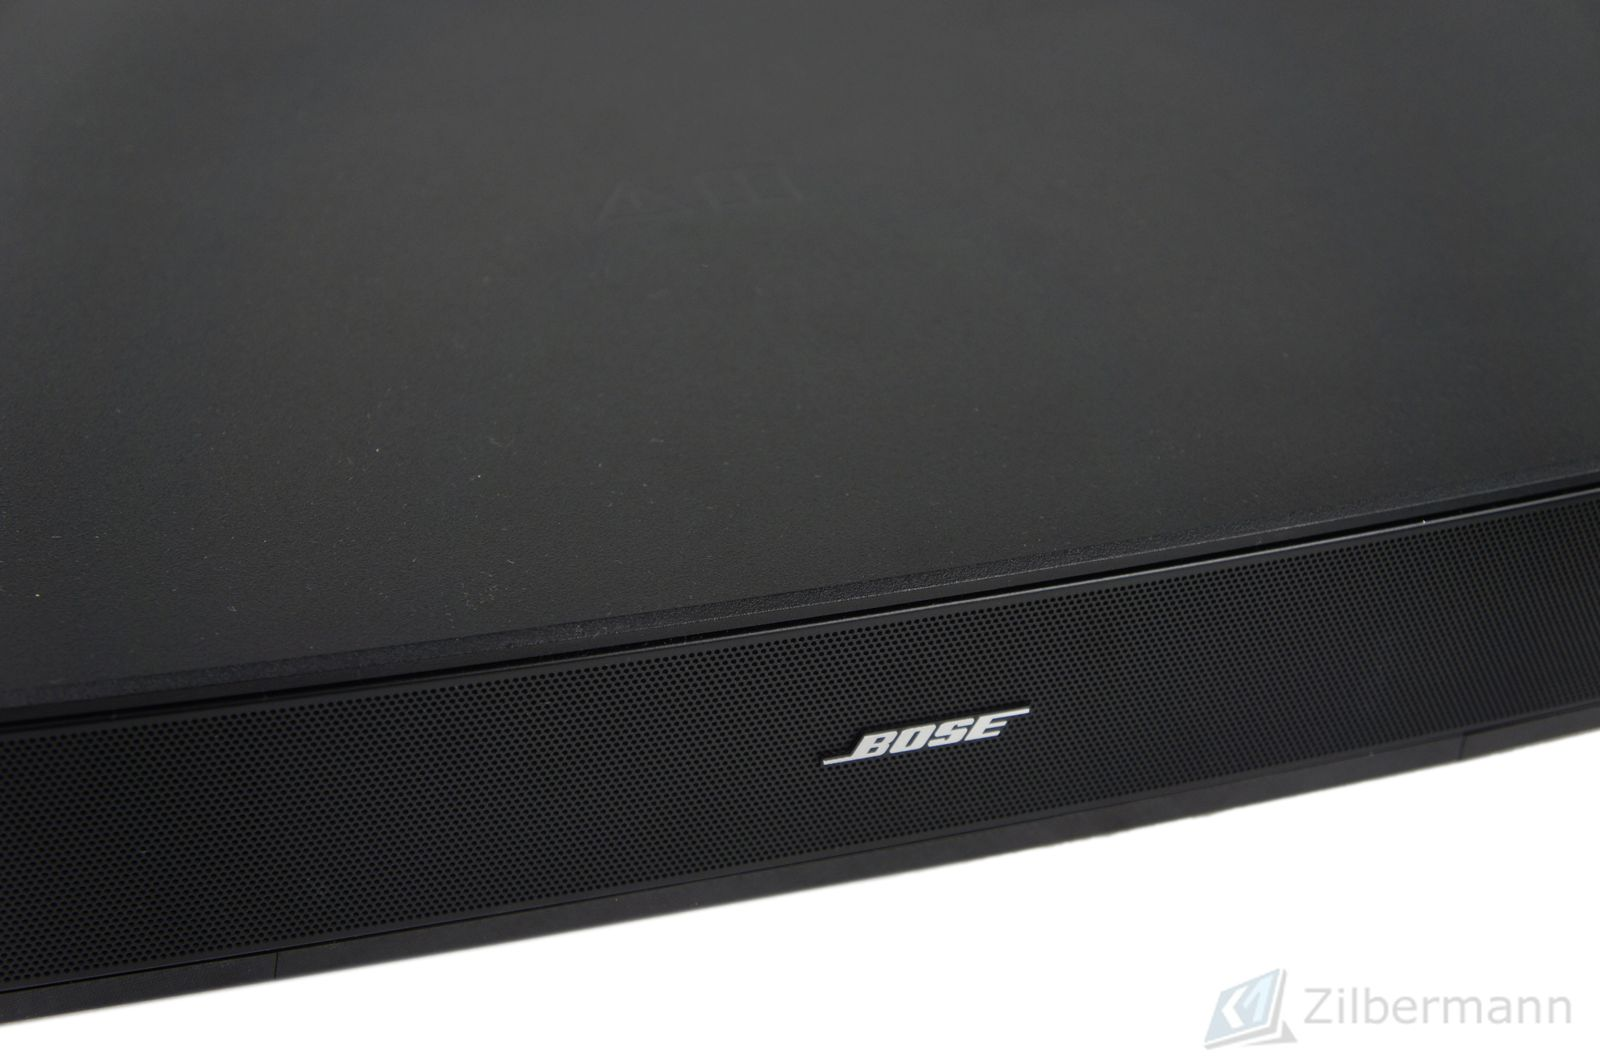 Bose_Solo_TV_Sound_System_03